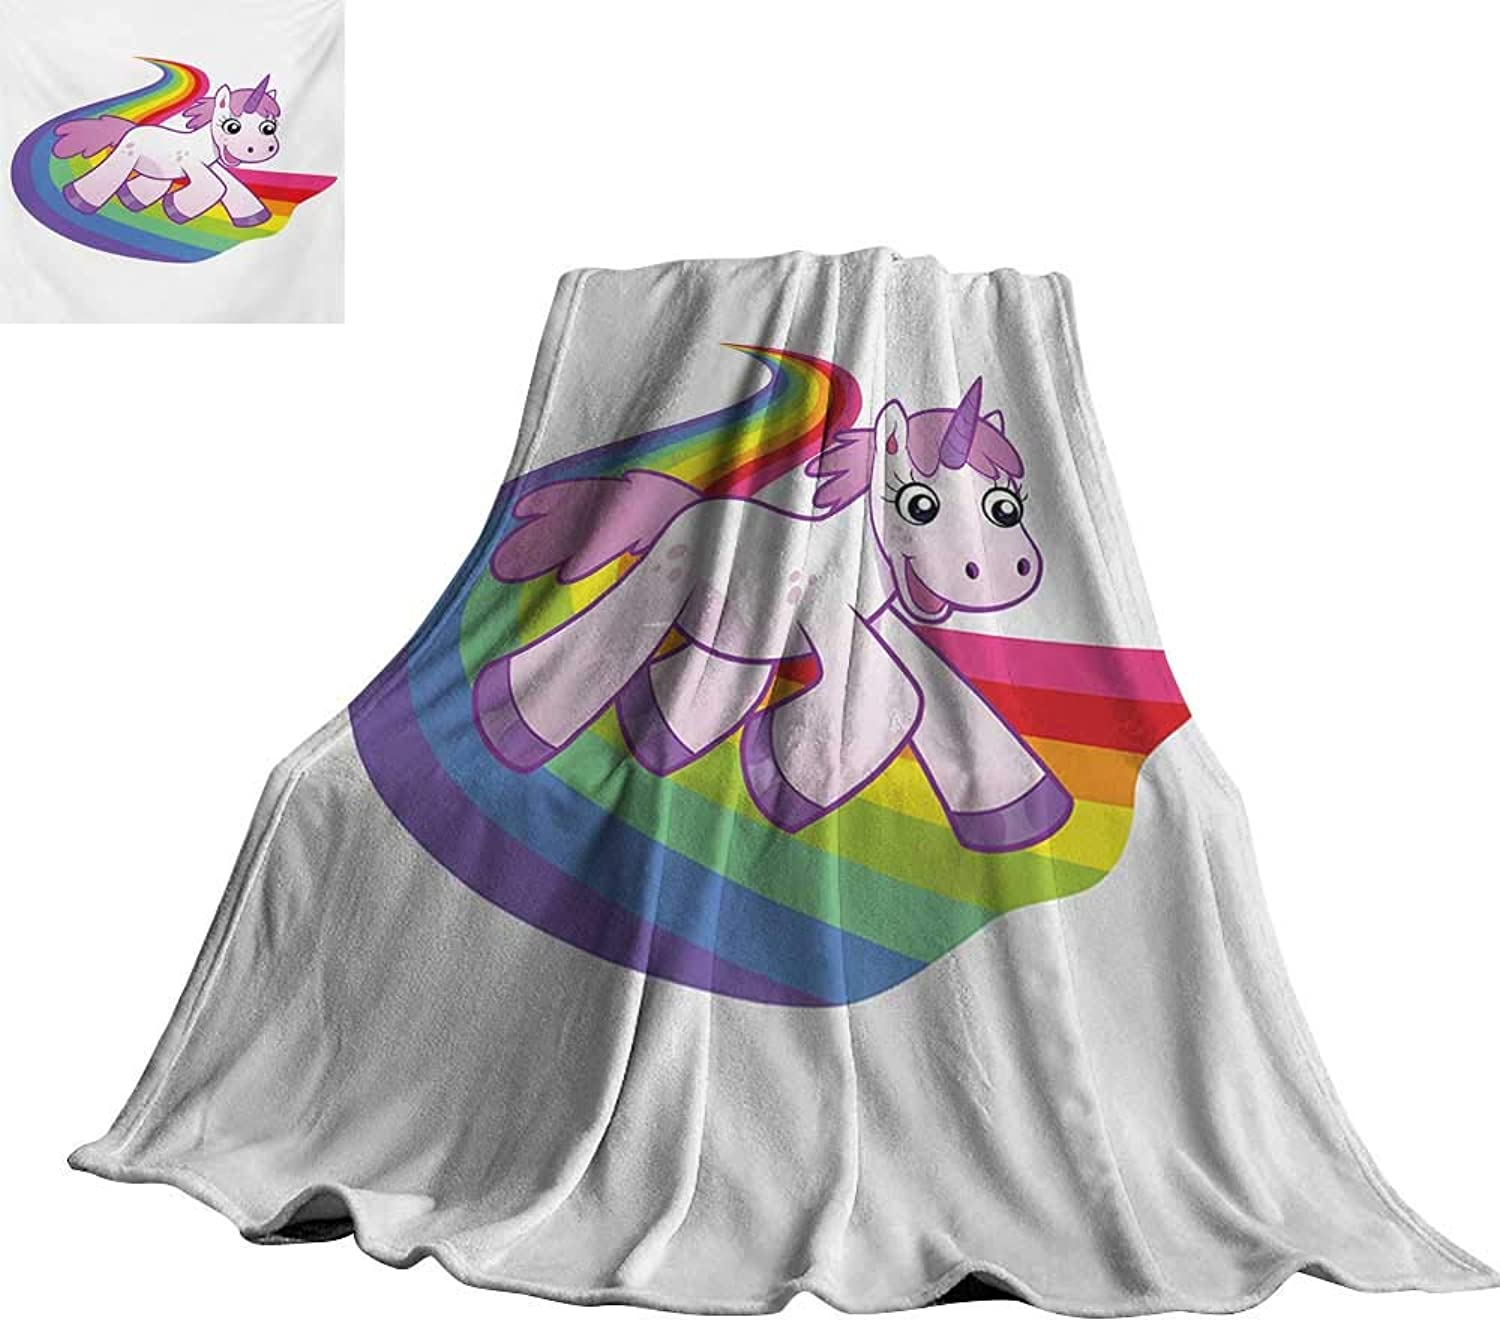 Cartoon,Lightweight Blanket Baby Unicorn Runs on The Rainbow Mythological Fantasy Legendary Creature Image for Couch Bed Living Room 60 x50